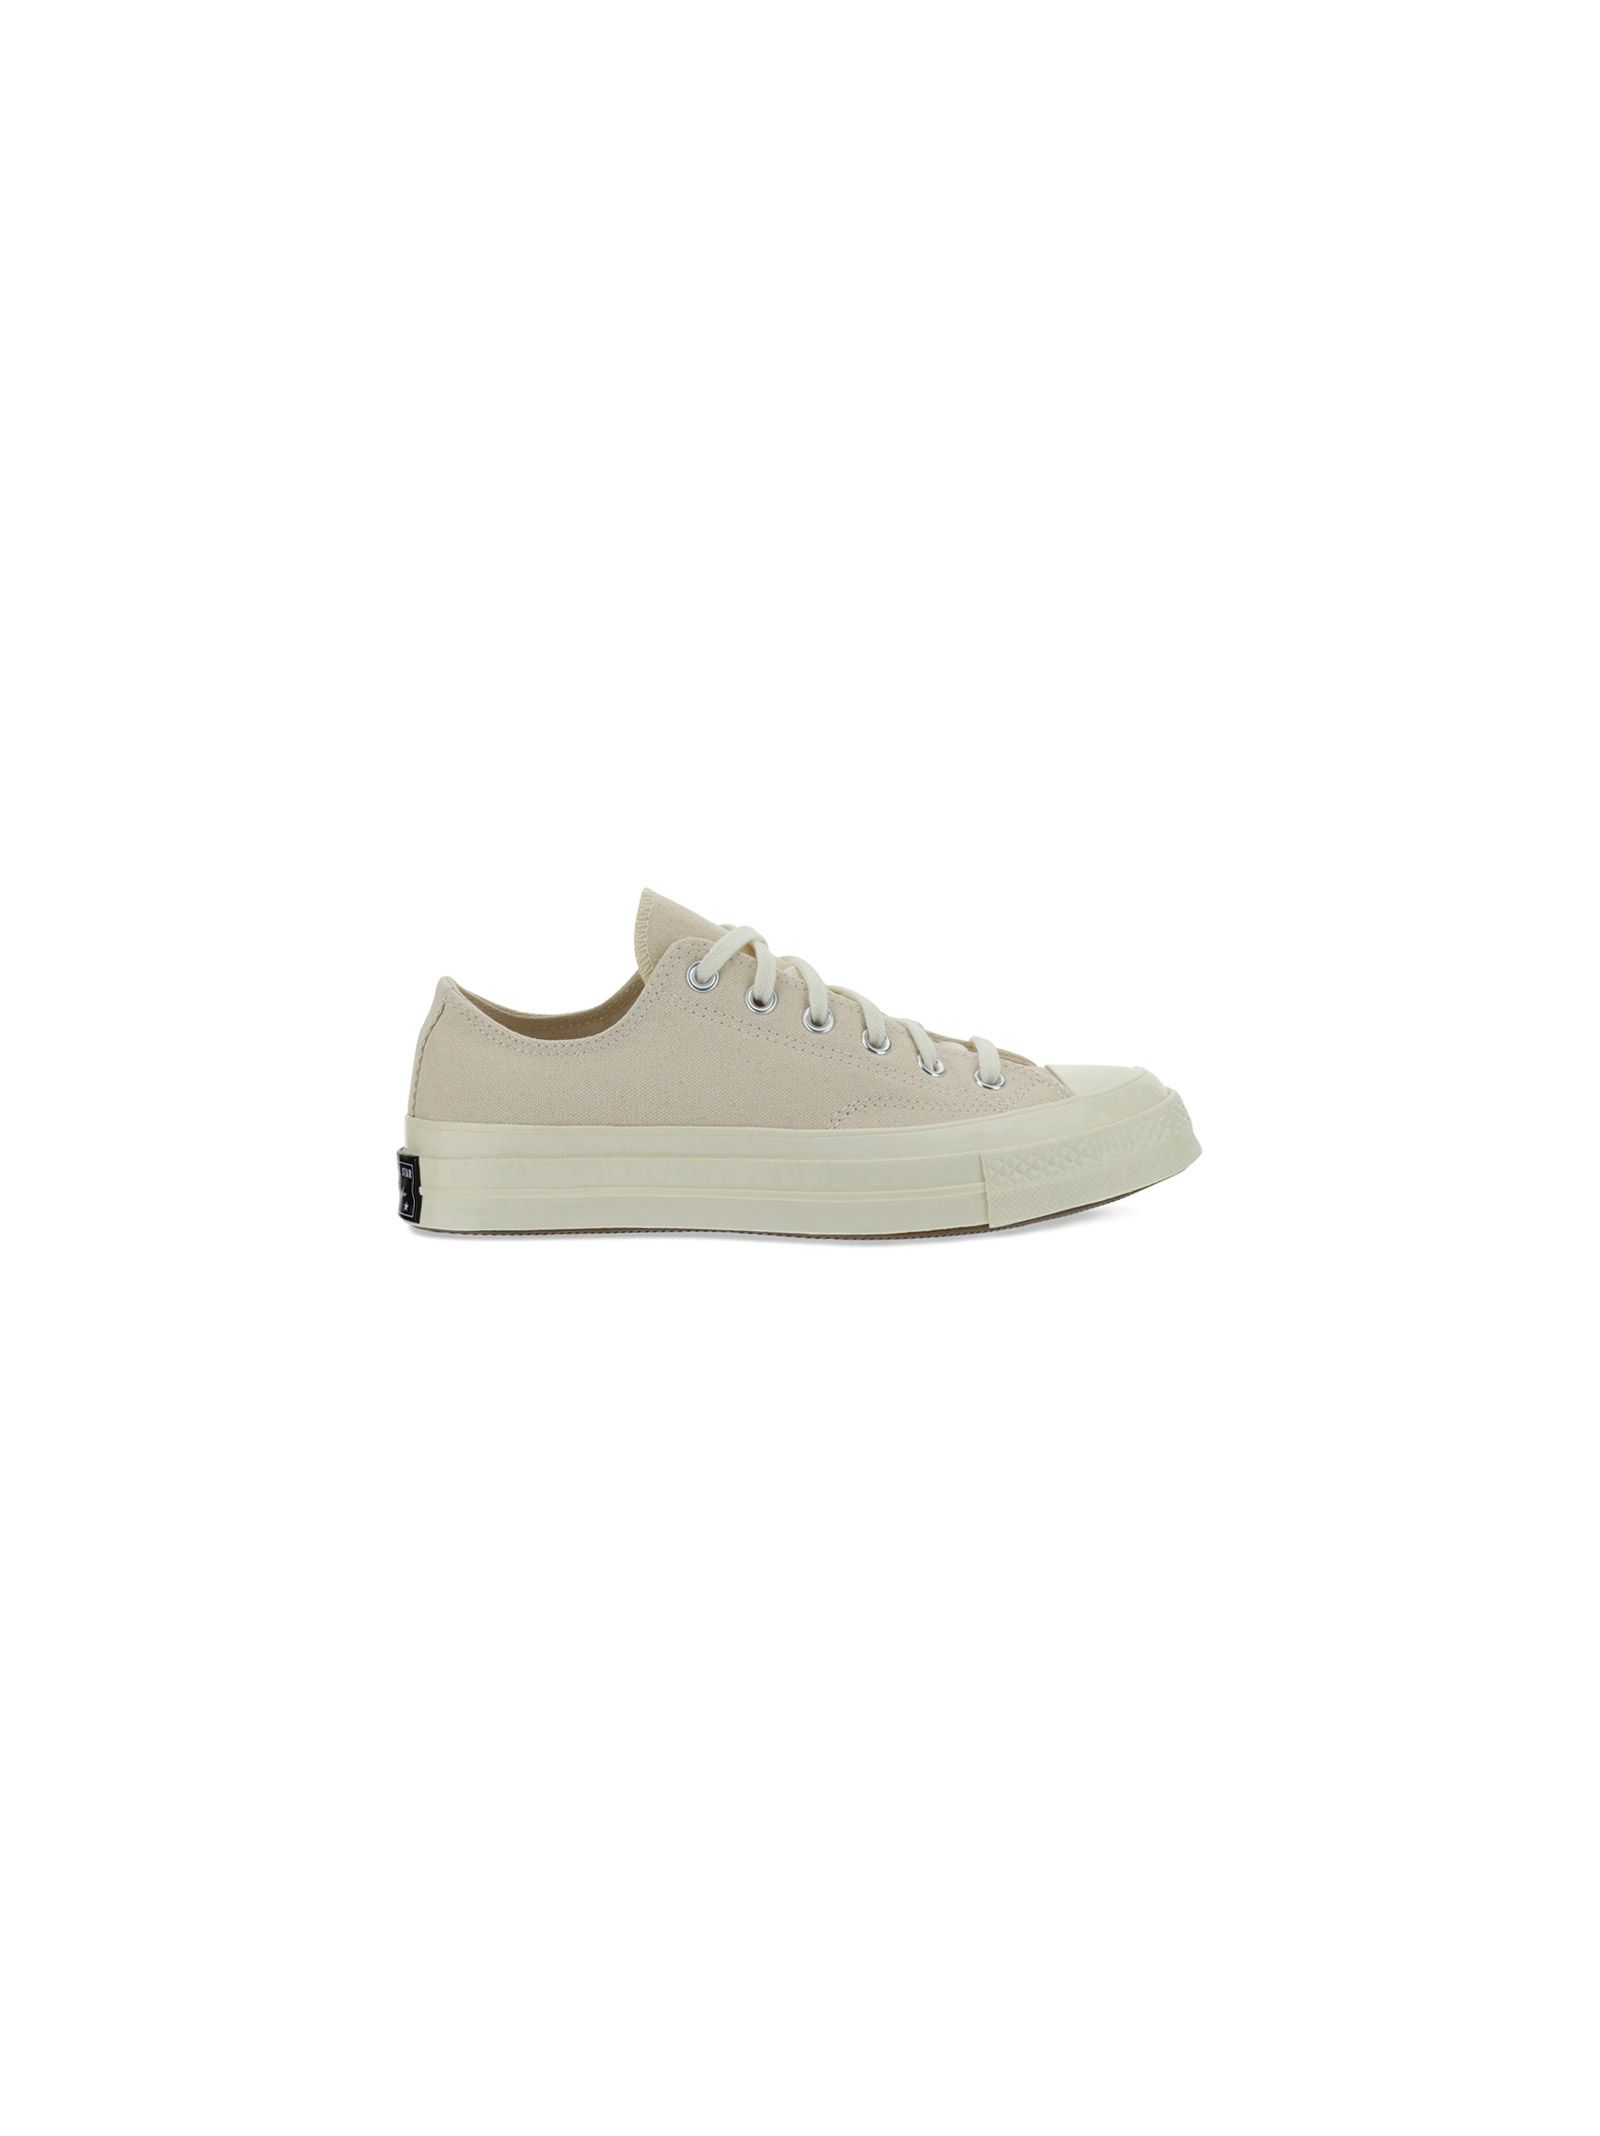 Converse Canvases CONVERSE MEN'S 162211C836 WHITE OTHER MATERIALS SNEAKERS